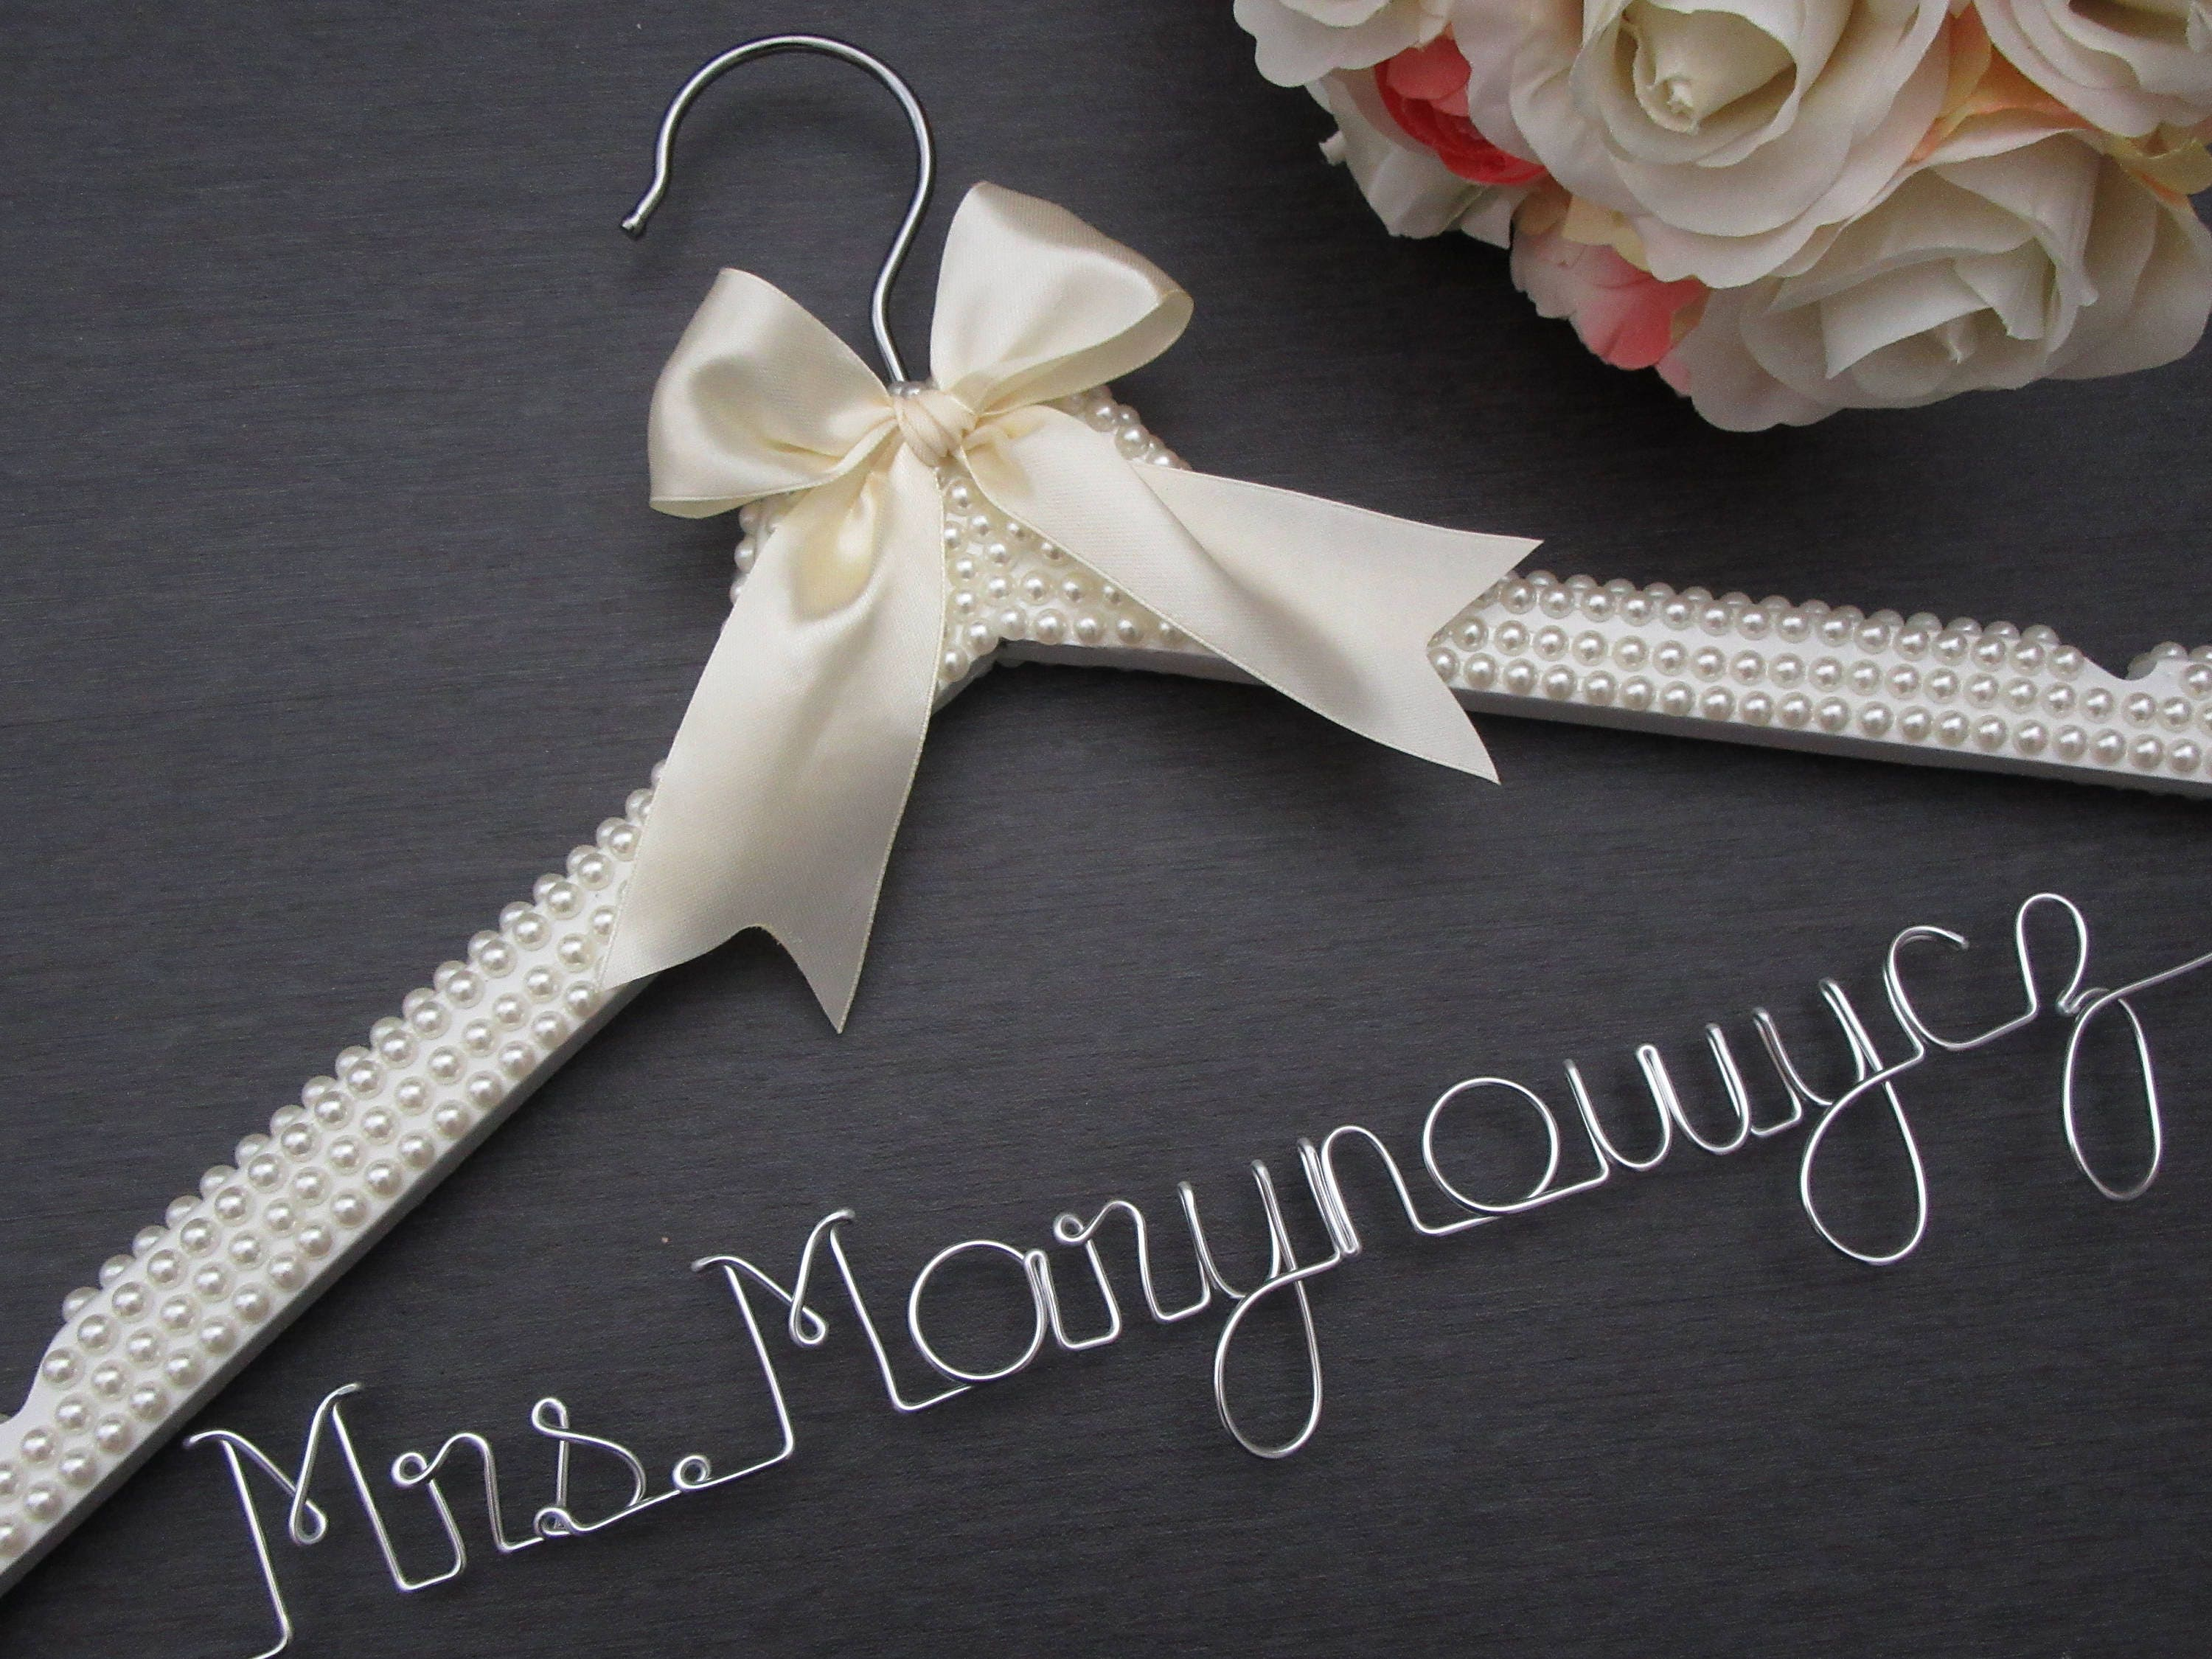 Personalized wedding dress hanger pearl wedding dress hanger for Personalized wedding dress hangers